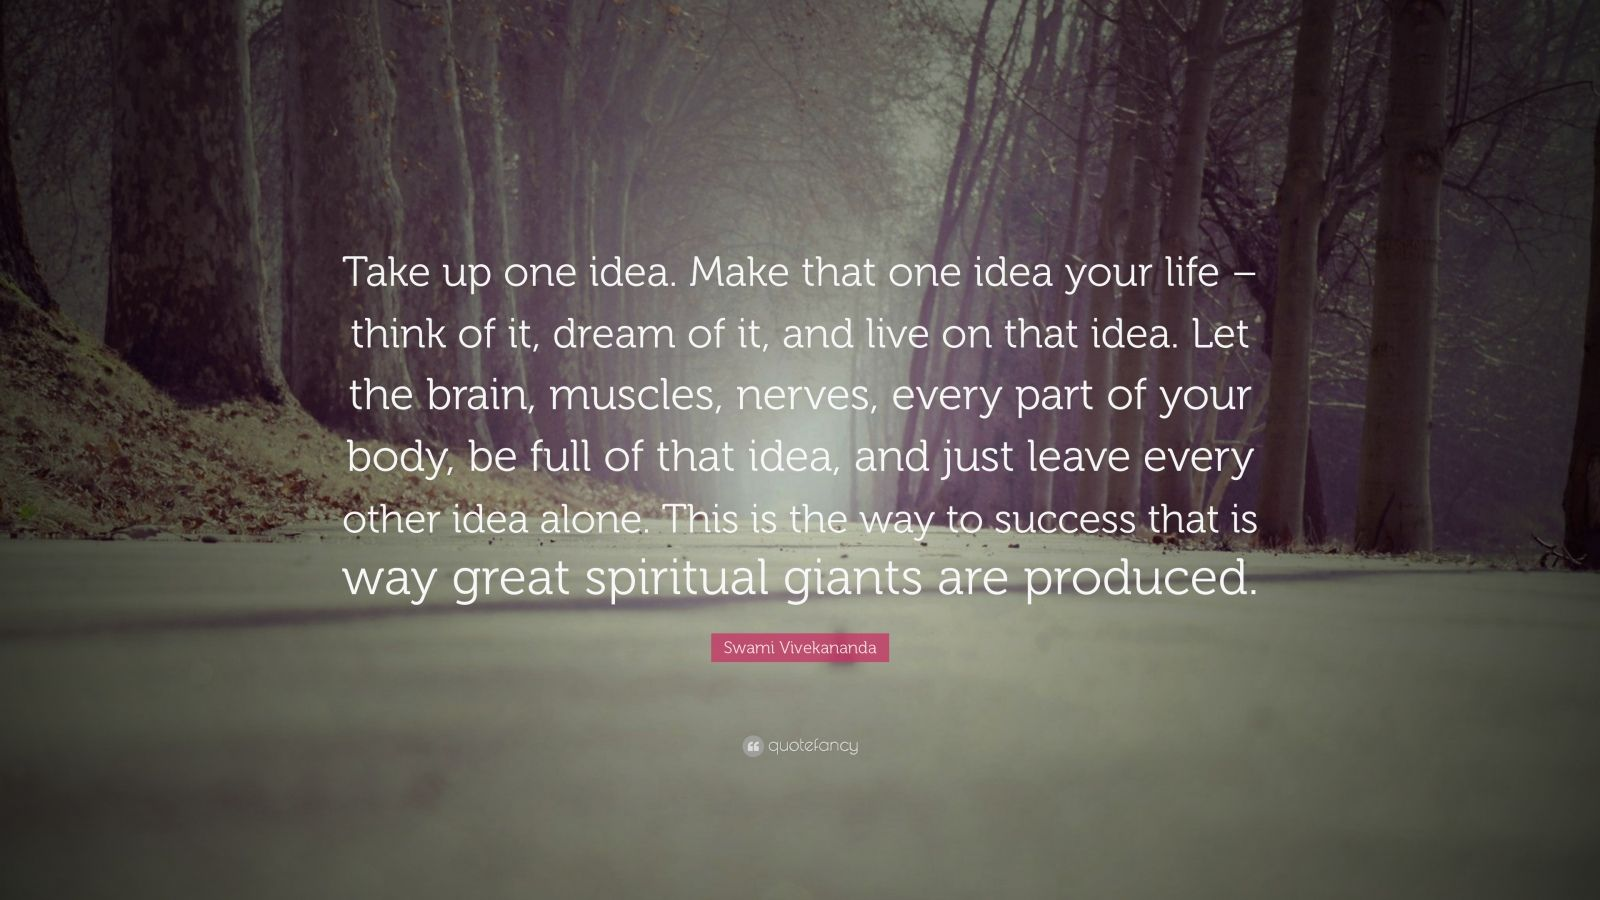 Poetry Love Quotes Wallpaper Swami Vivekananda Quote Take Up One Idea Make That One